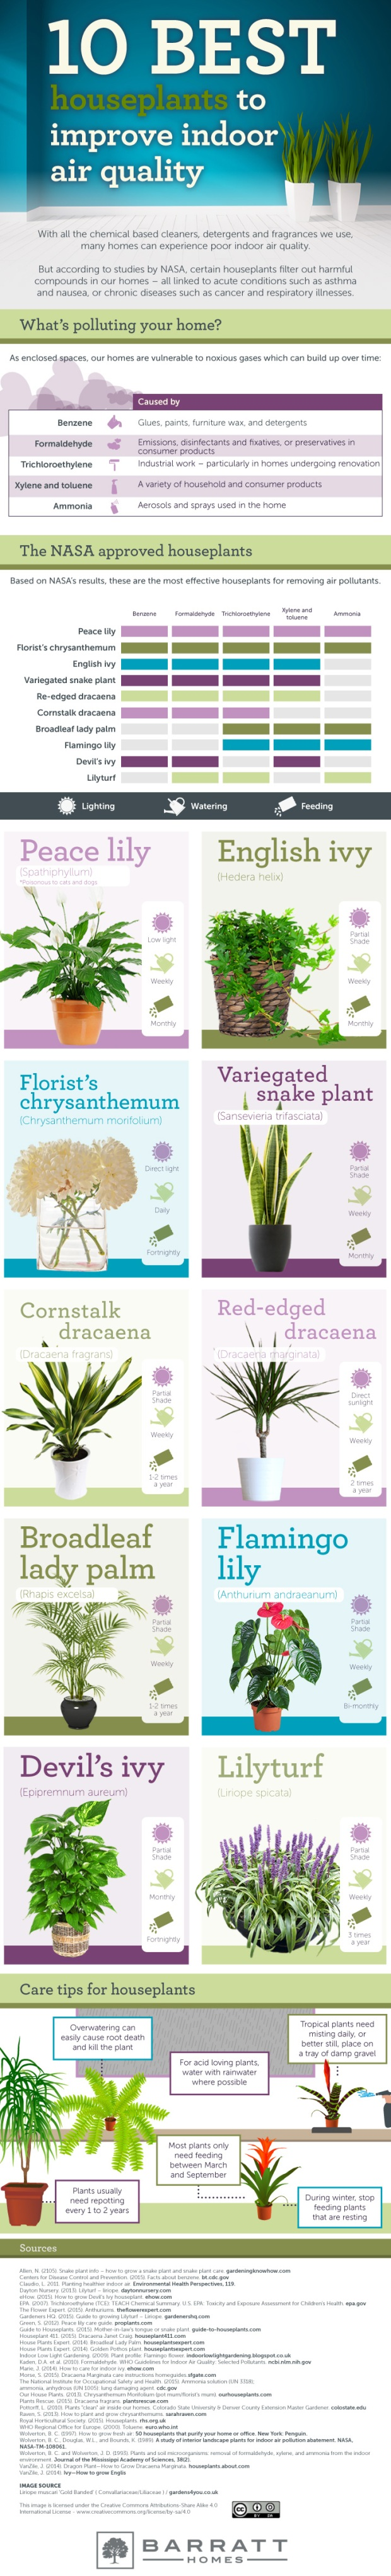 10-best-houseplants-to-improve-indoor-air-quality-V3